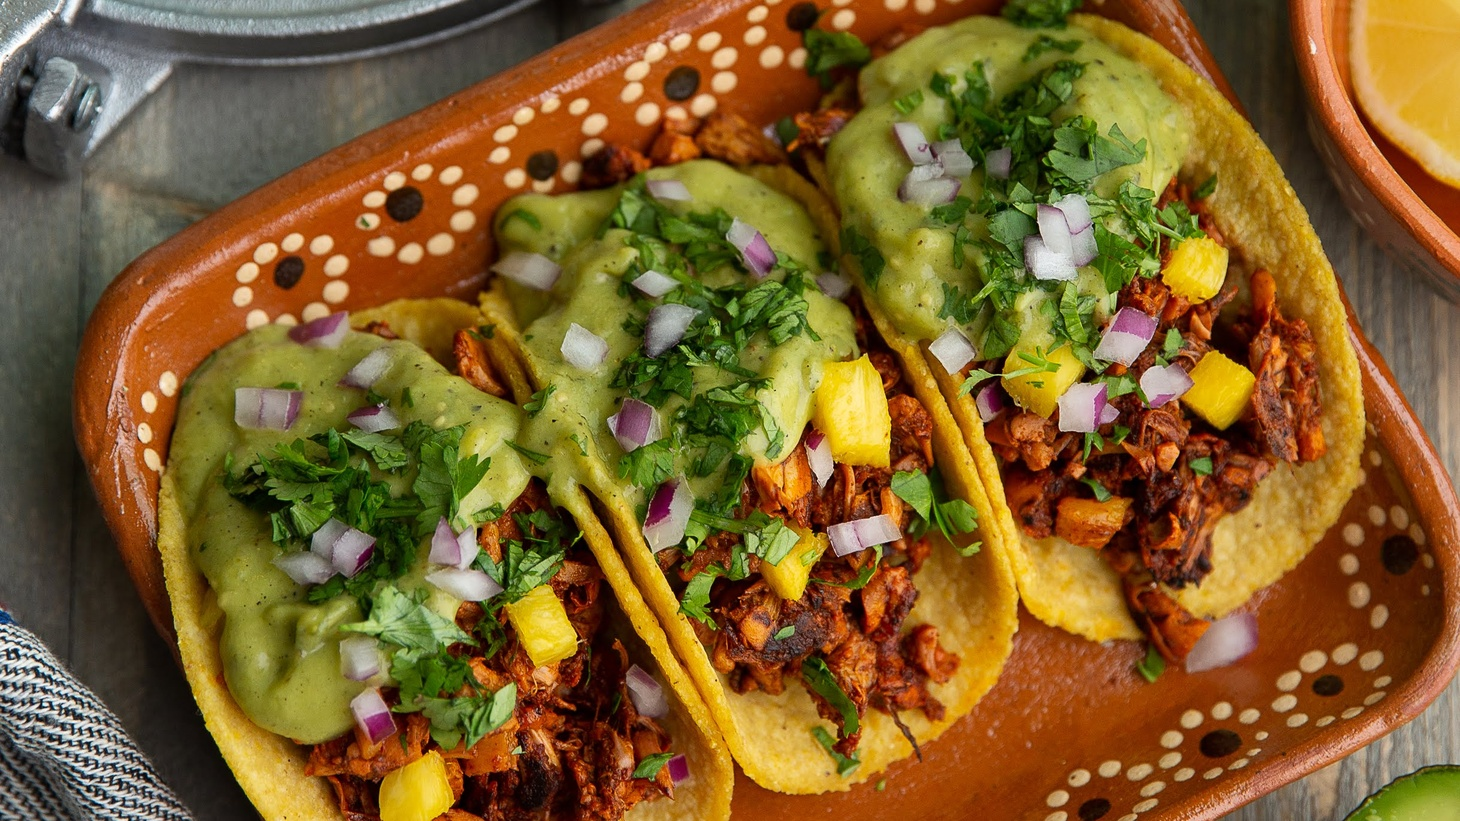 Tacos al pastor using jackfruit is an easy substitute for carnitas.